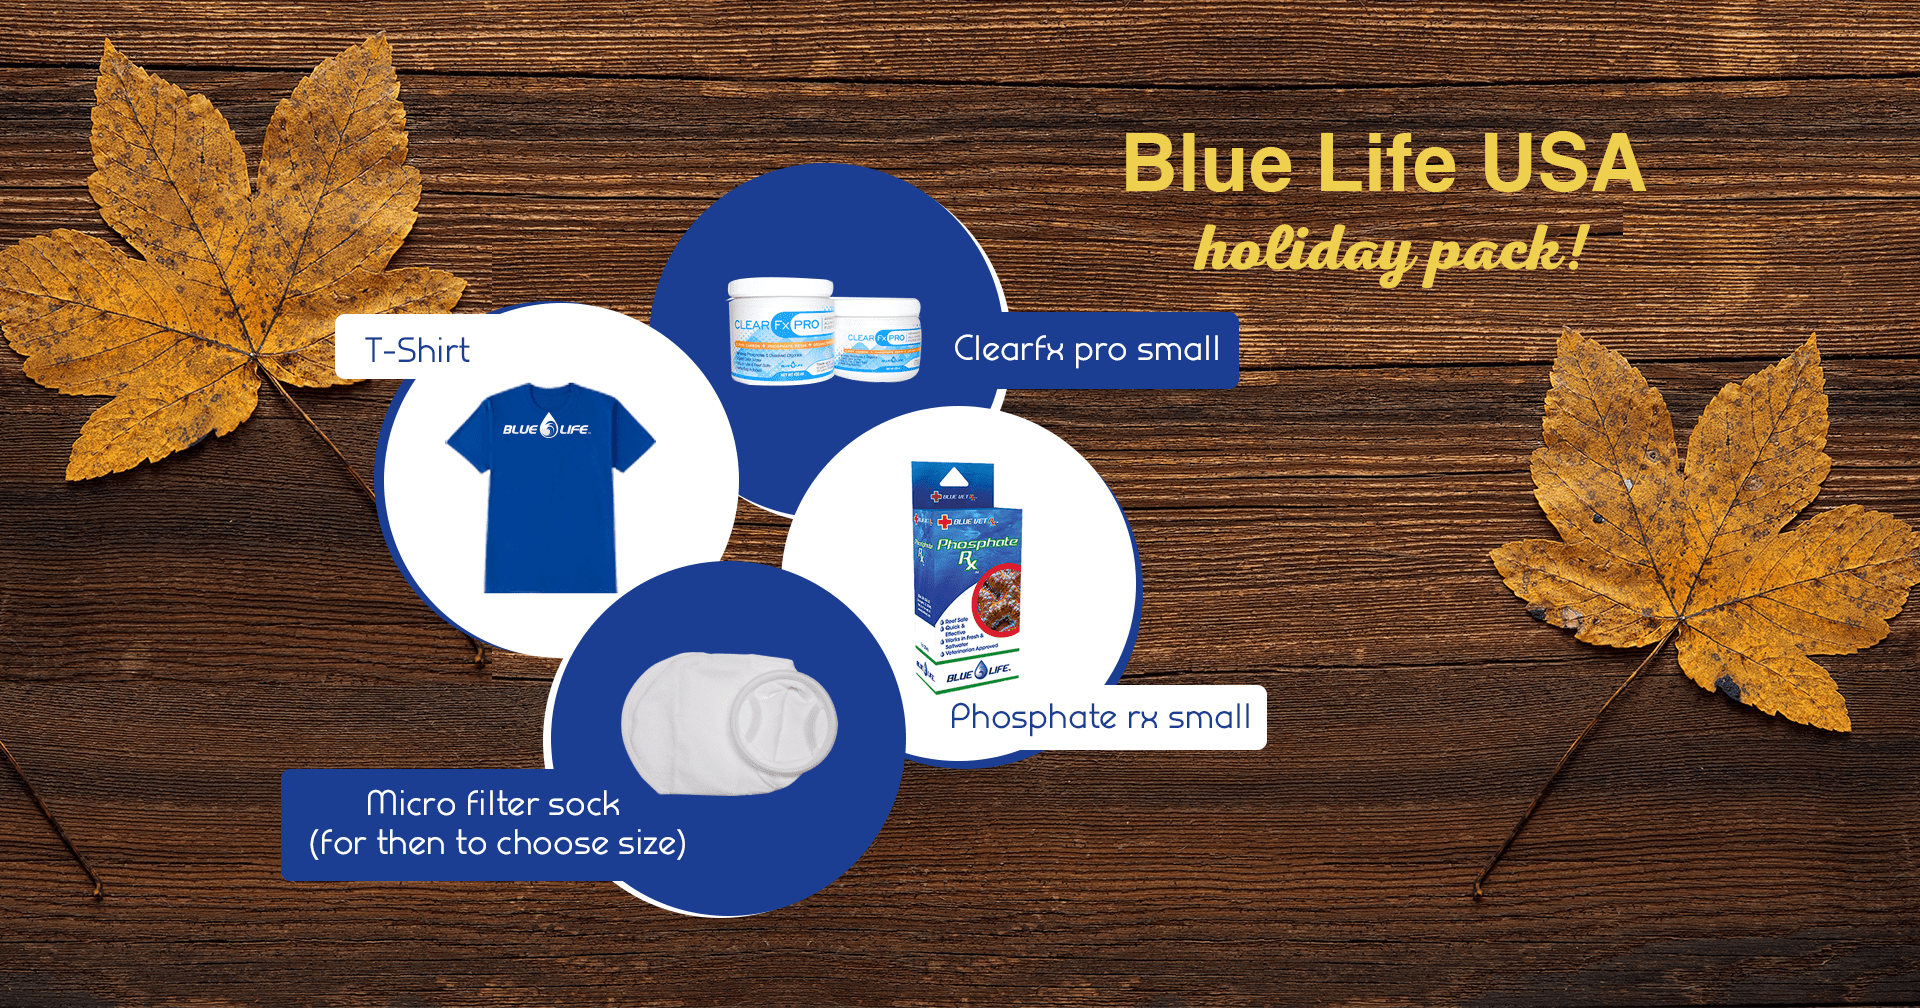 Blue Life USA Holiday Pack GIVEAWAY!